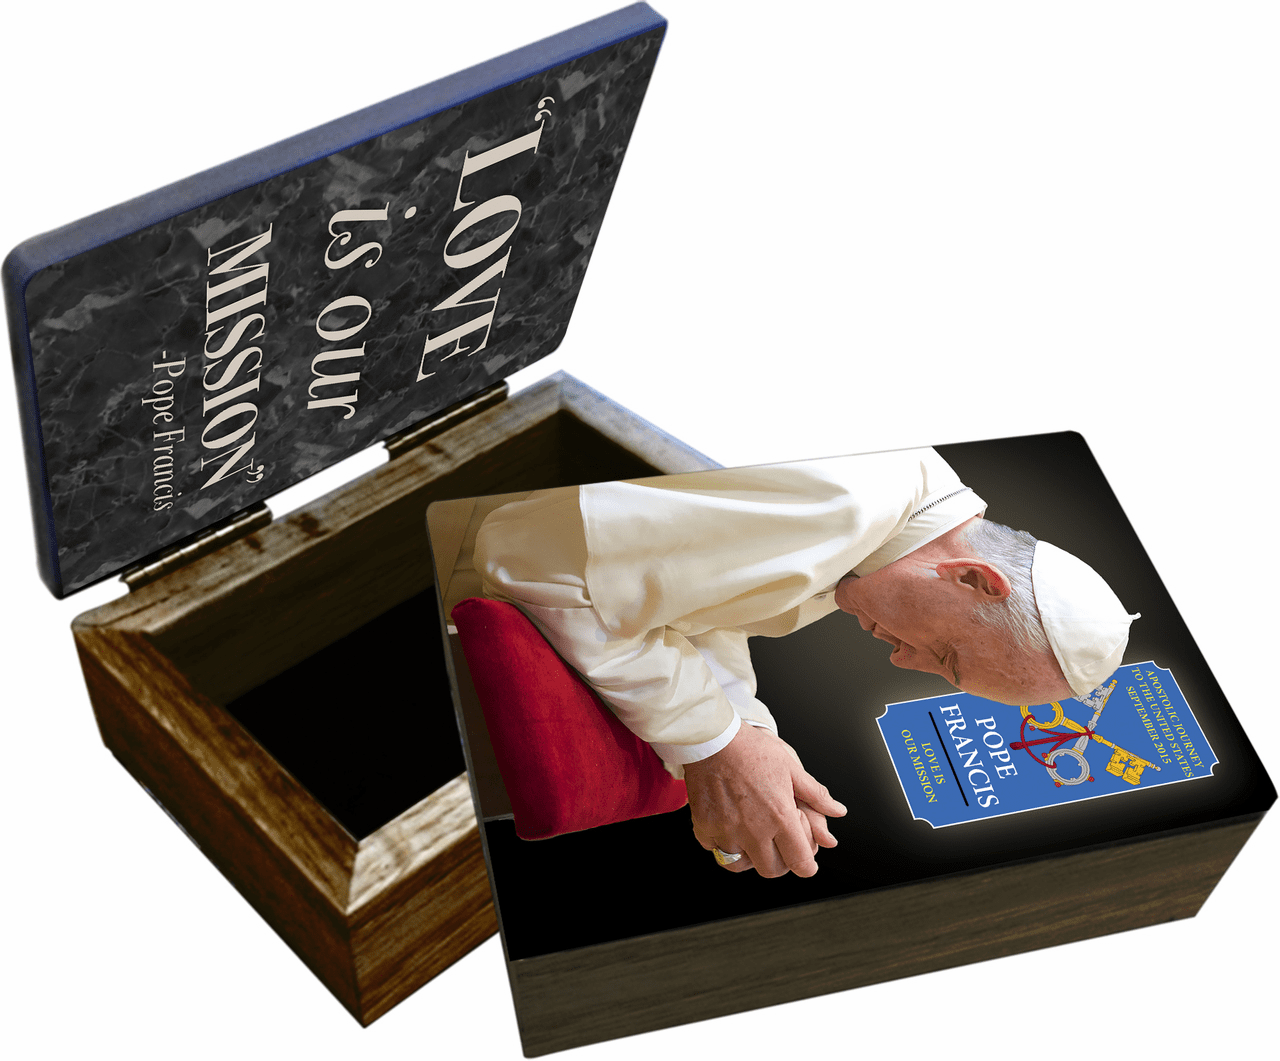 Nelson's Pope Francis in Prayer Commemorative Apostolic Journey Wooden Rosary and Keepsake Box